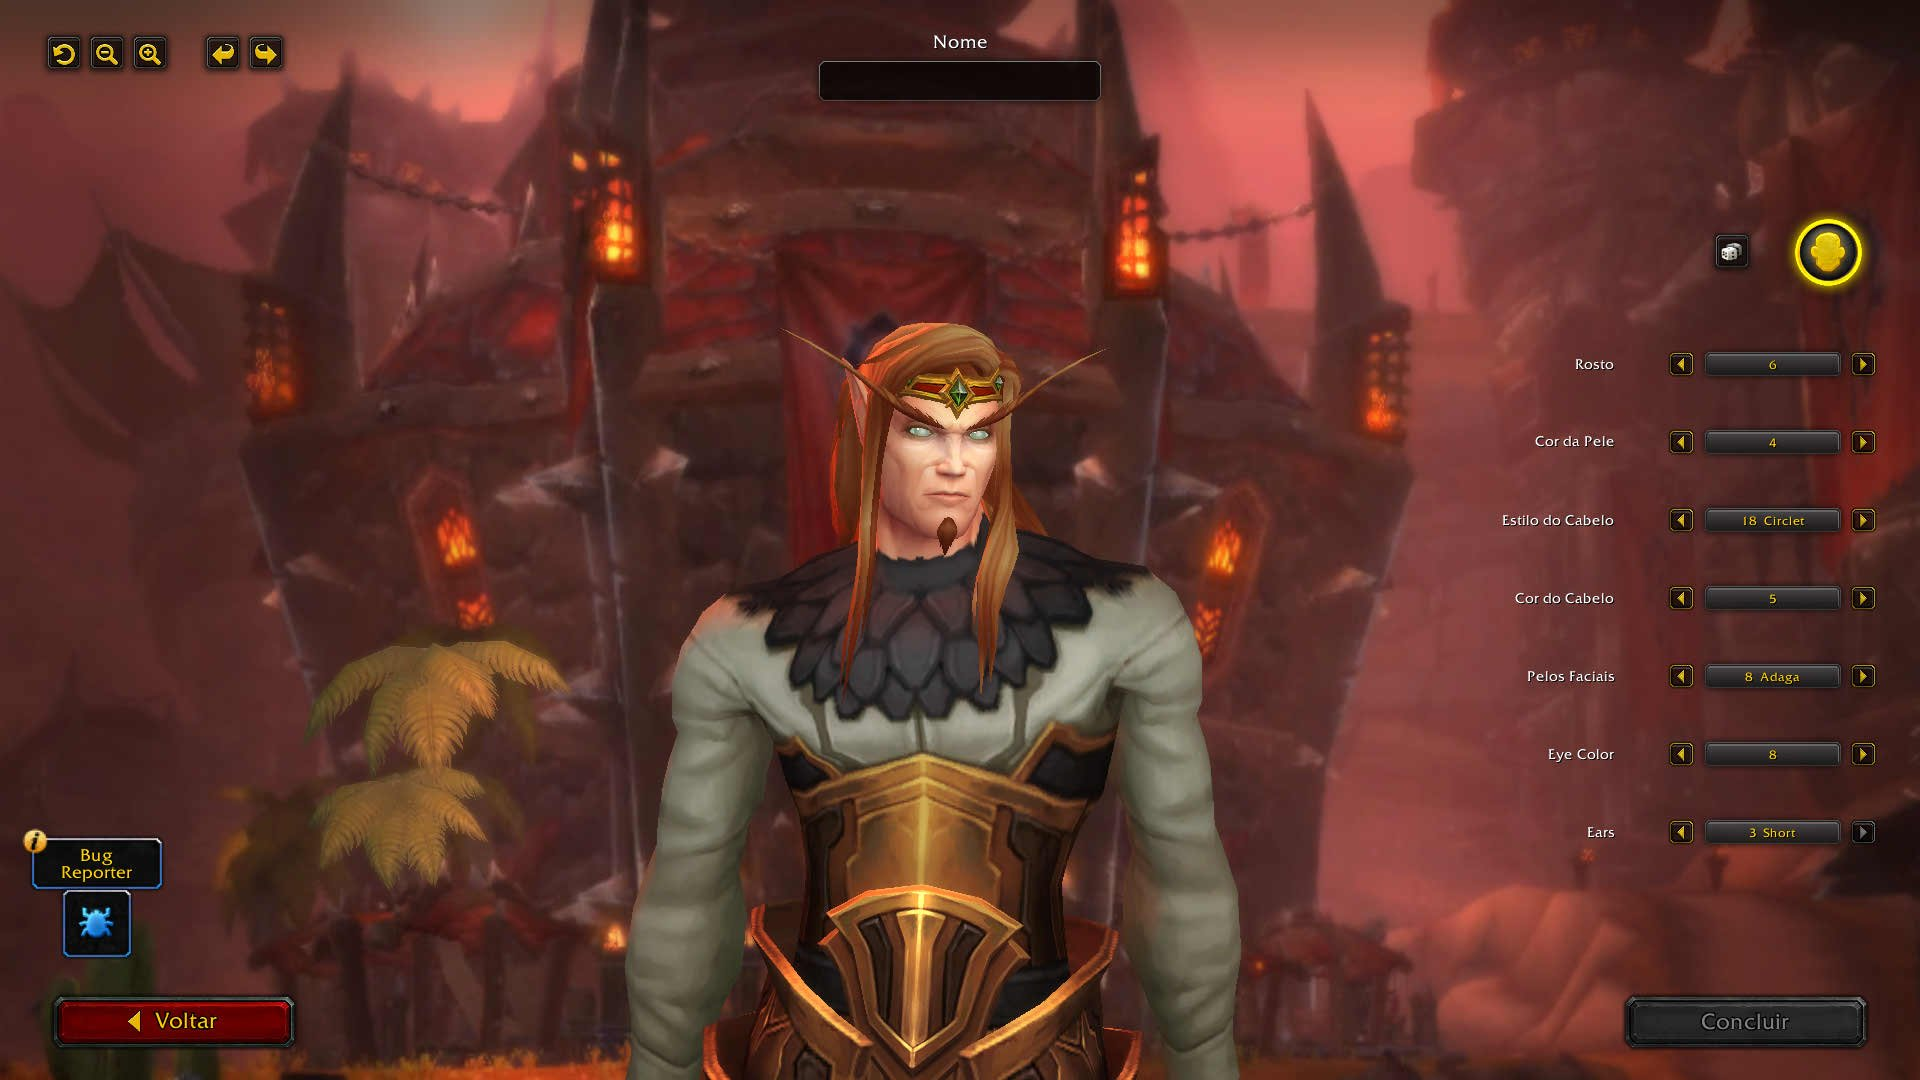 World of Warcraft - Alfa de Shadowlands - Criação de personagens dos Elfos Sangrentos